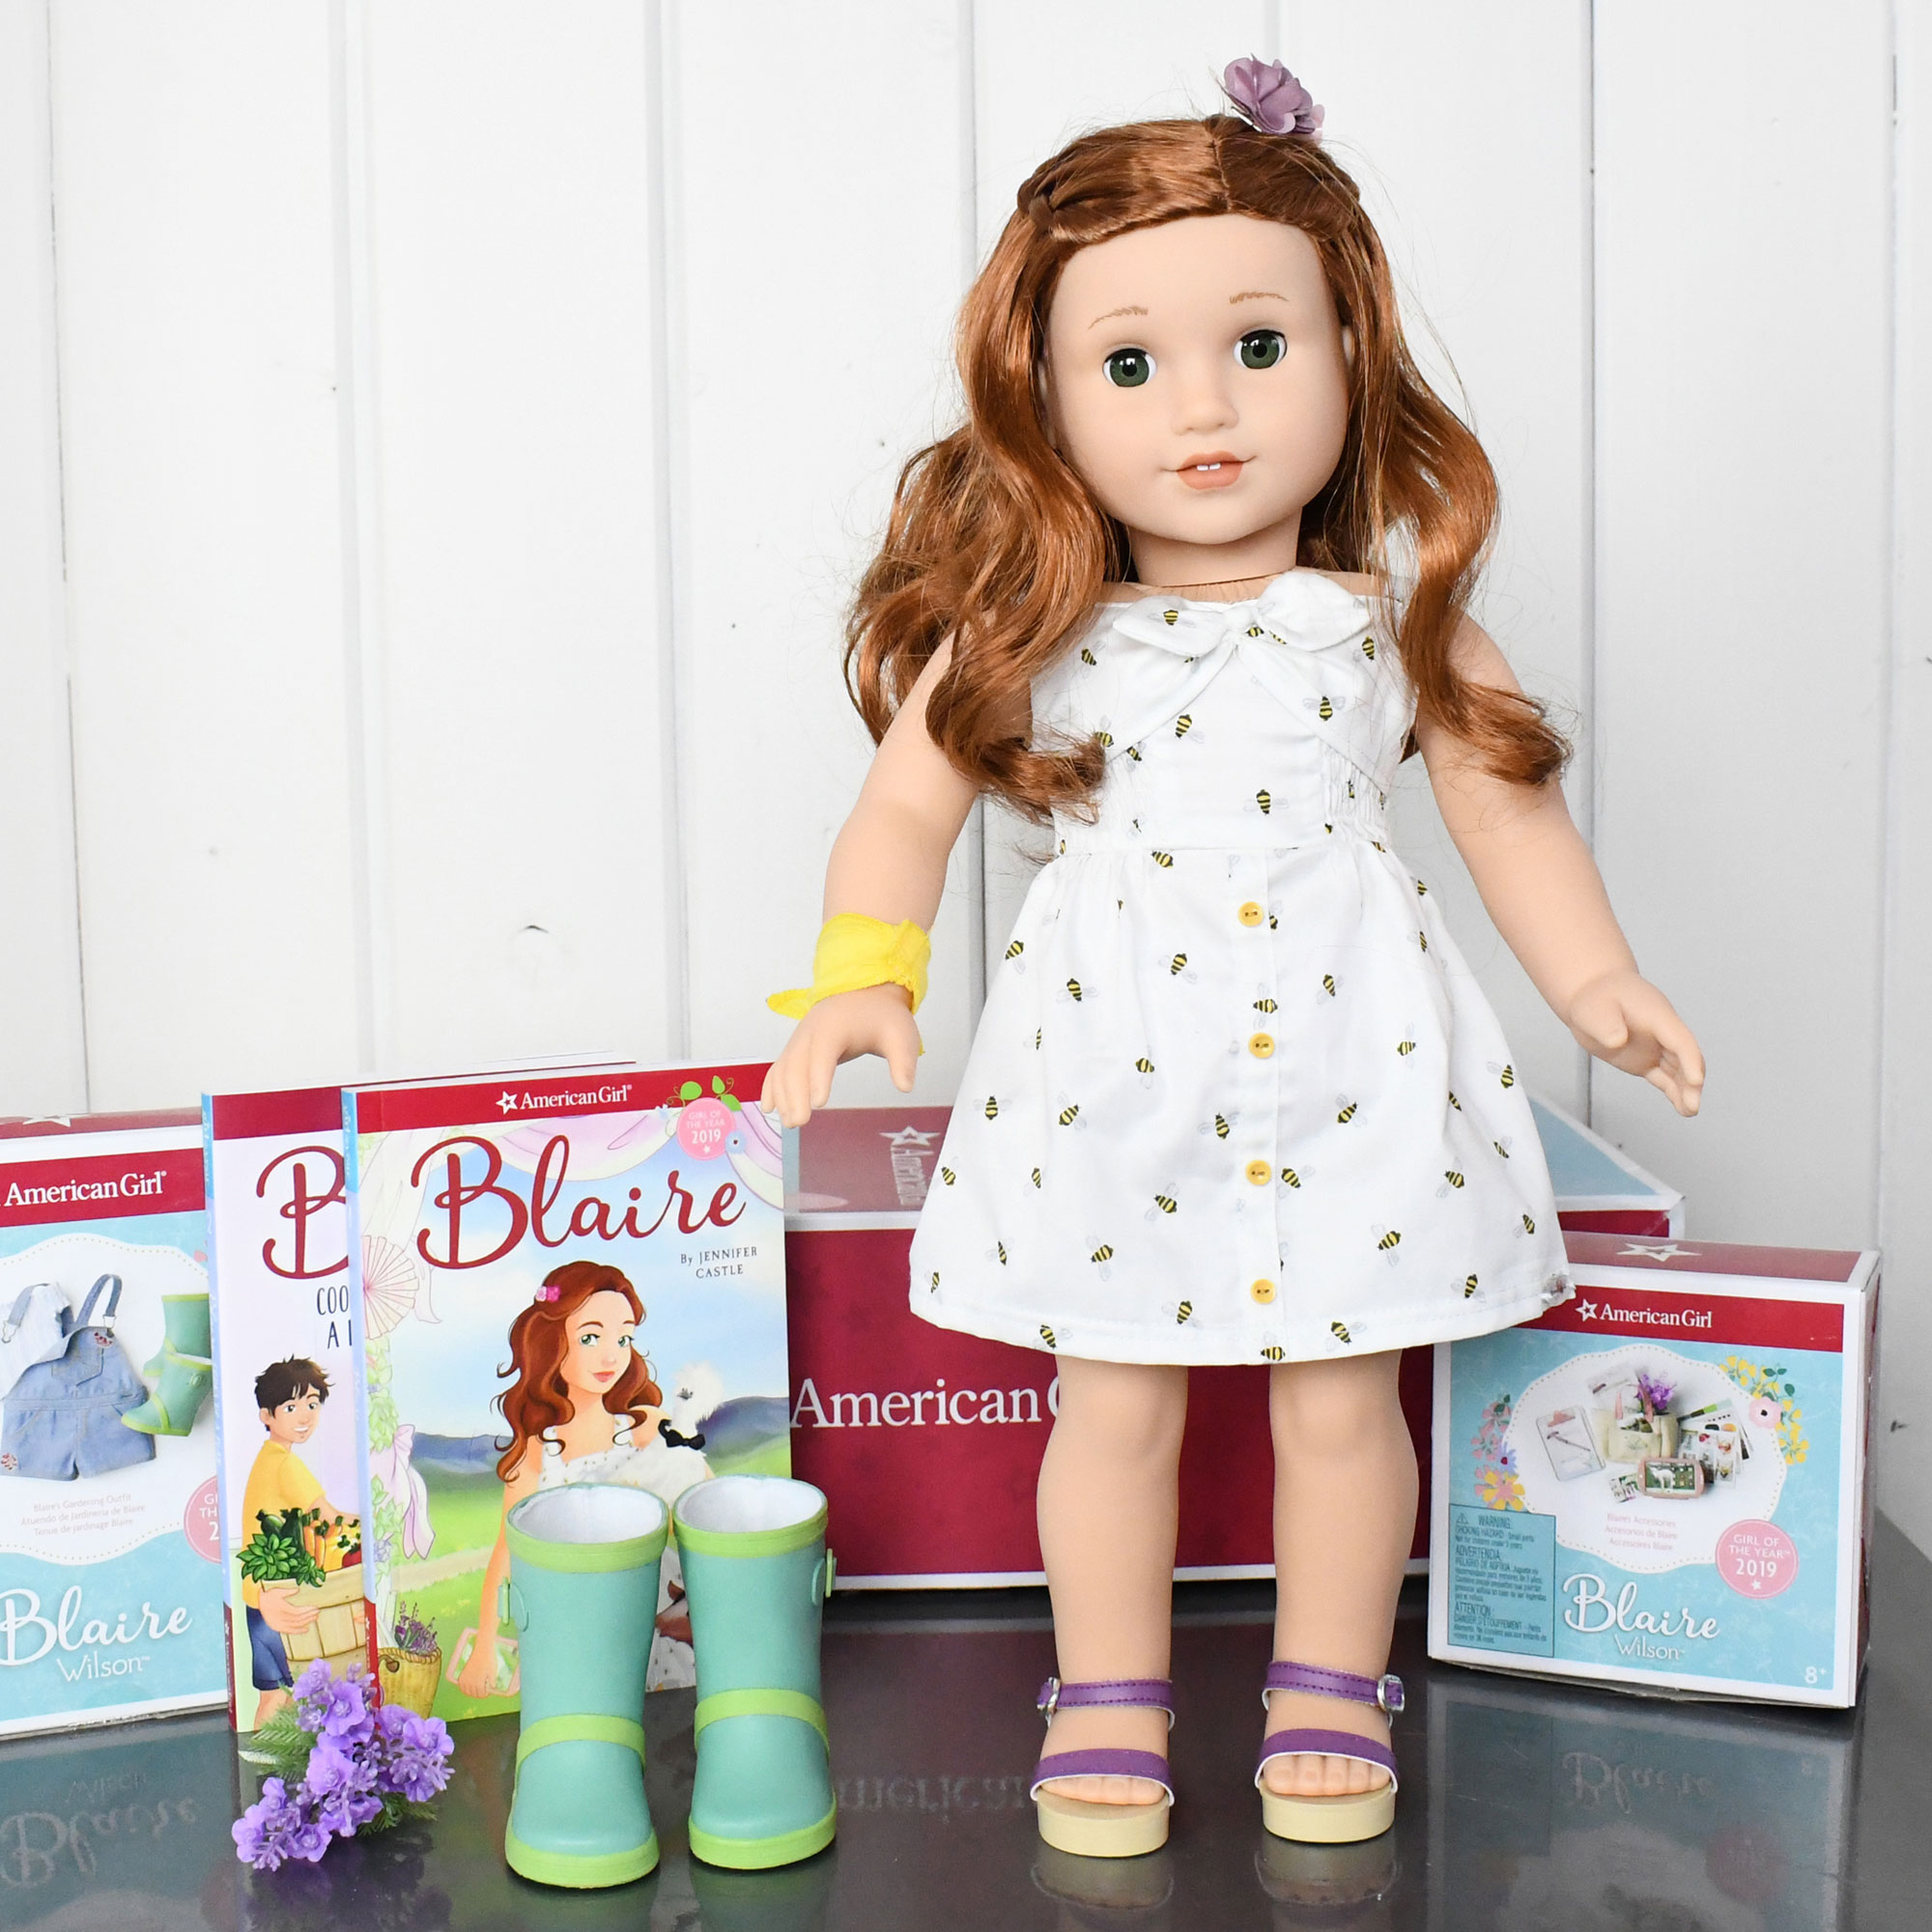 Meet American Girl Blaire Wilson + Doll Review